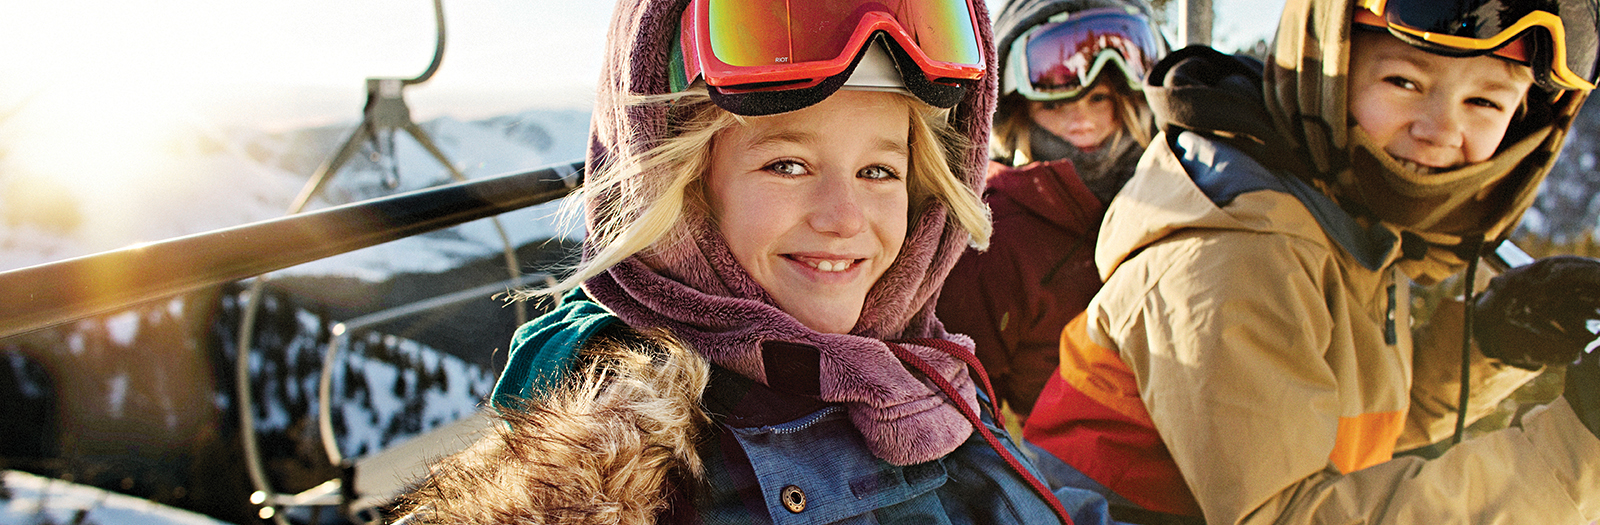 Sun Valley lodging packages hotels and vacation rentals